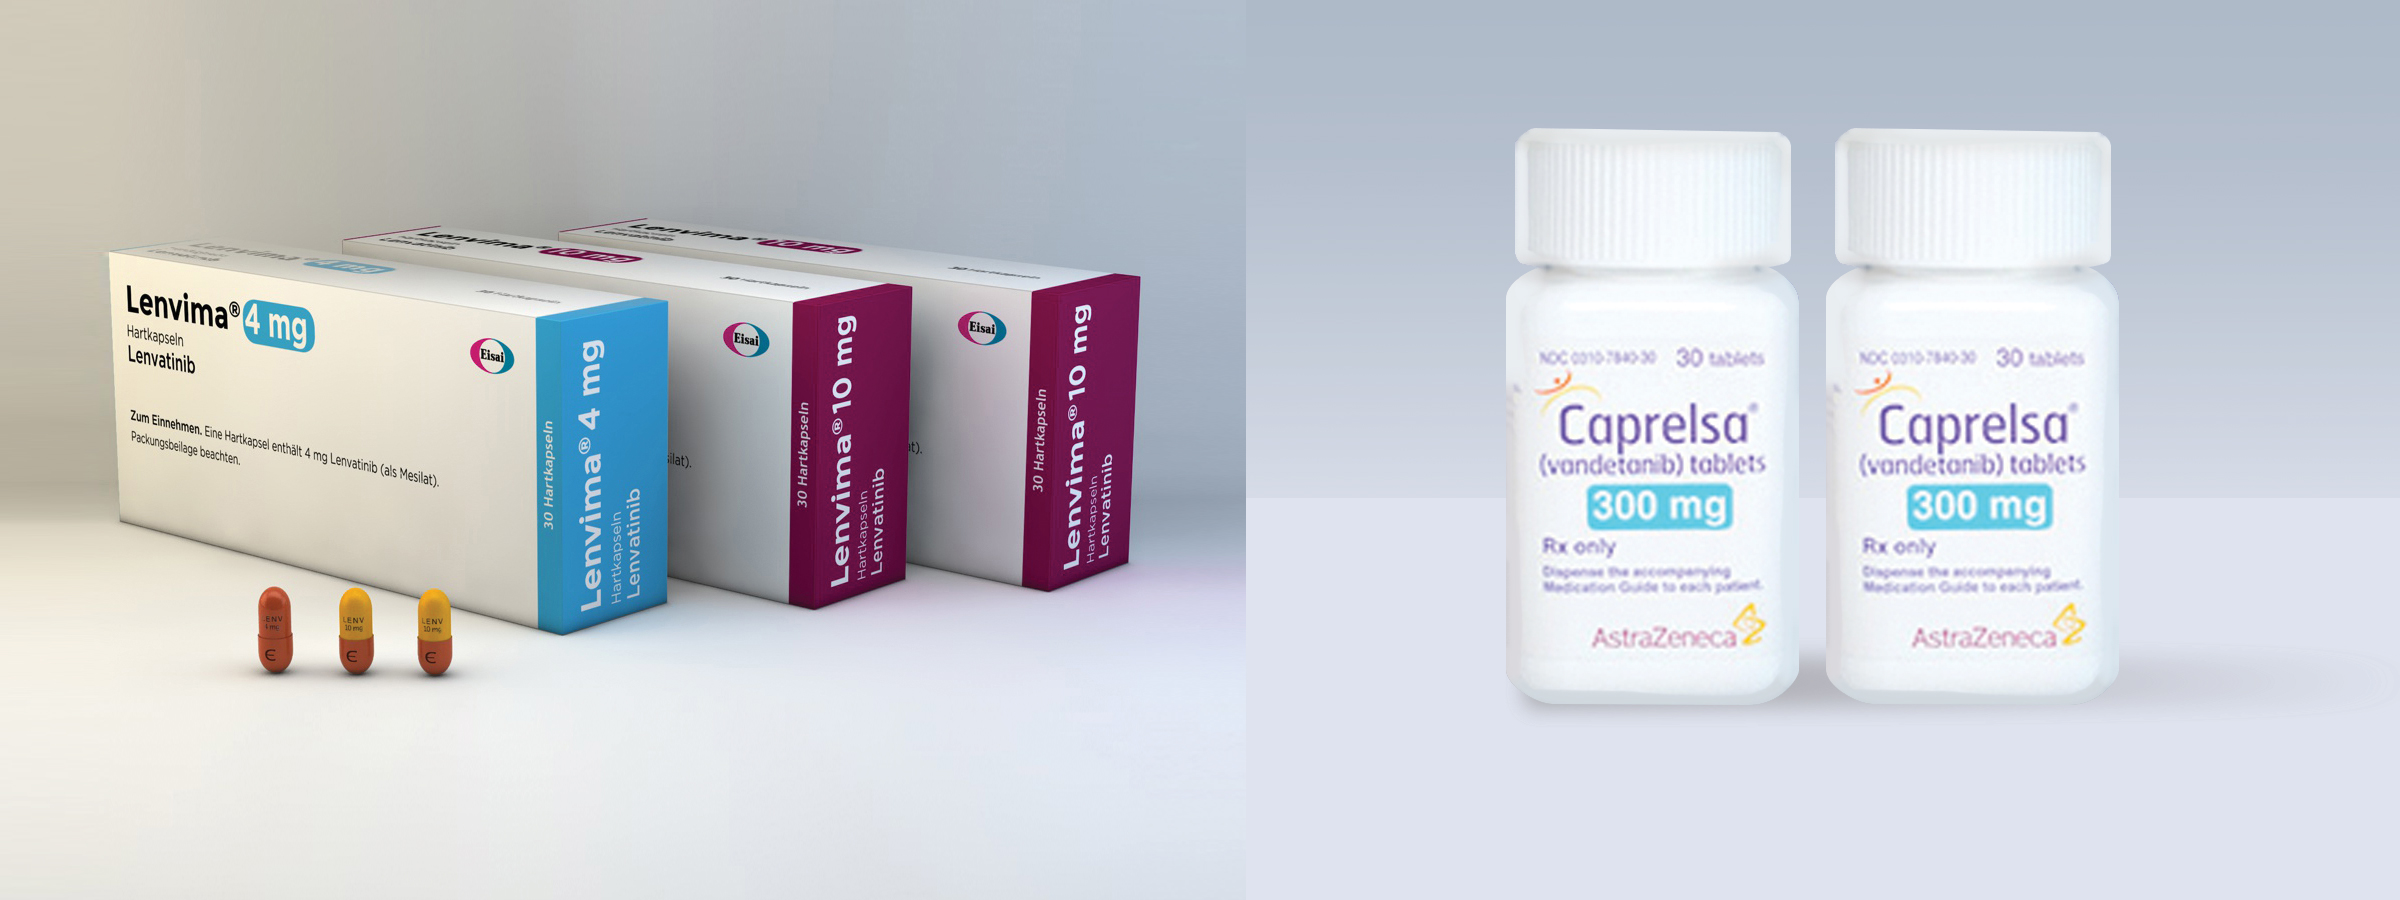 Lenvima™ and Caprelsa®